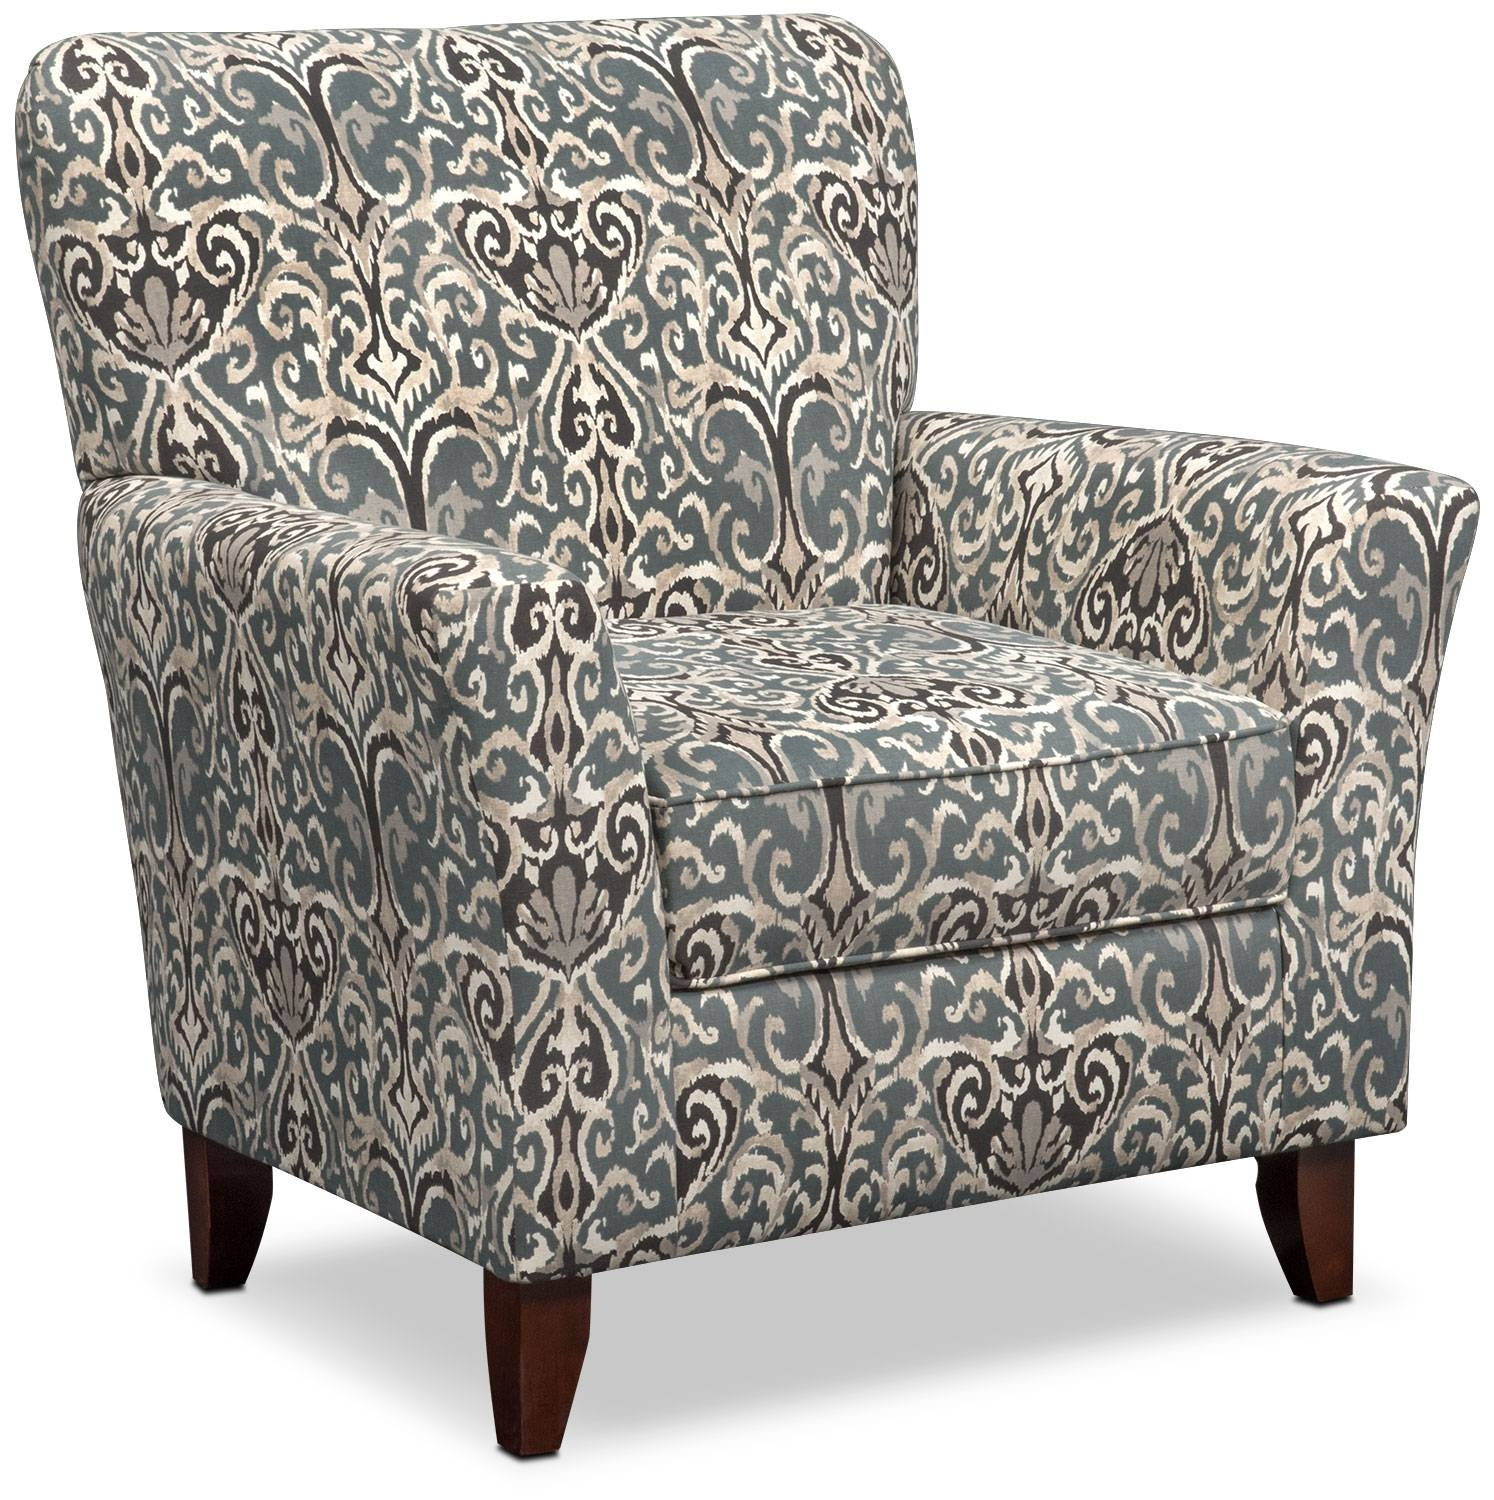 Carla Sofa And Accent Chair Set - Gray | Value City Furniture within Sofa And Accent Chair Set (Image 9 of 30)